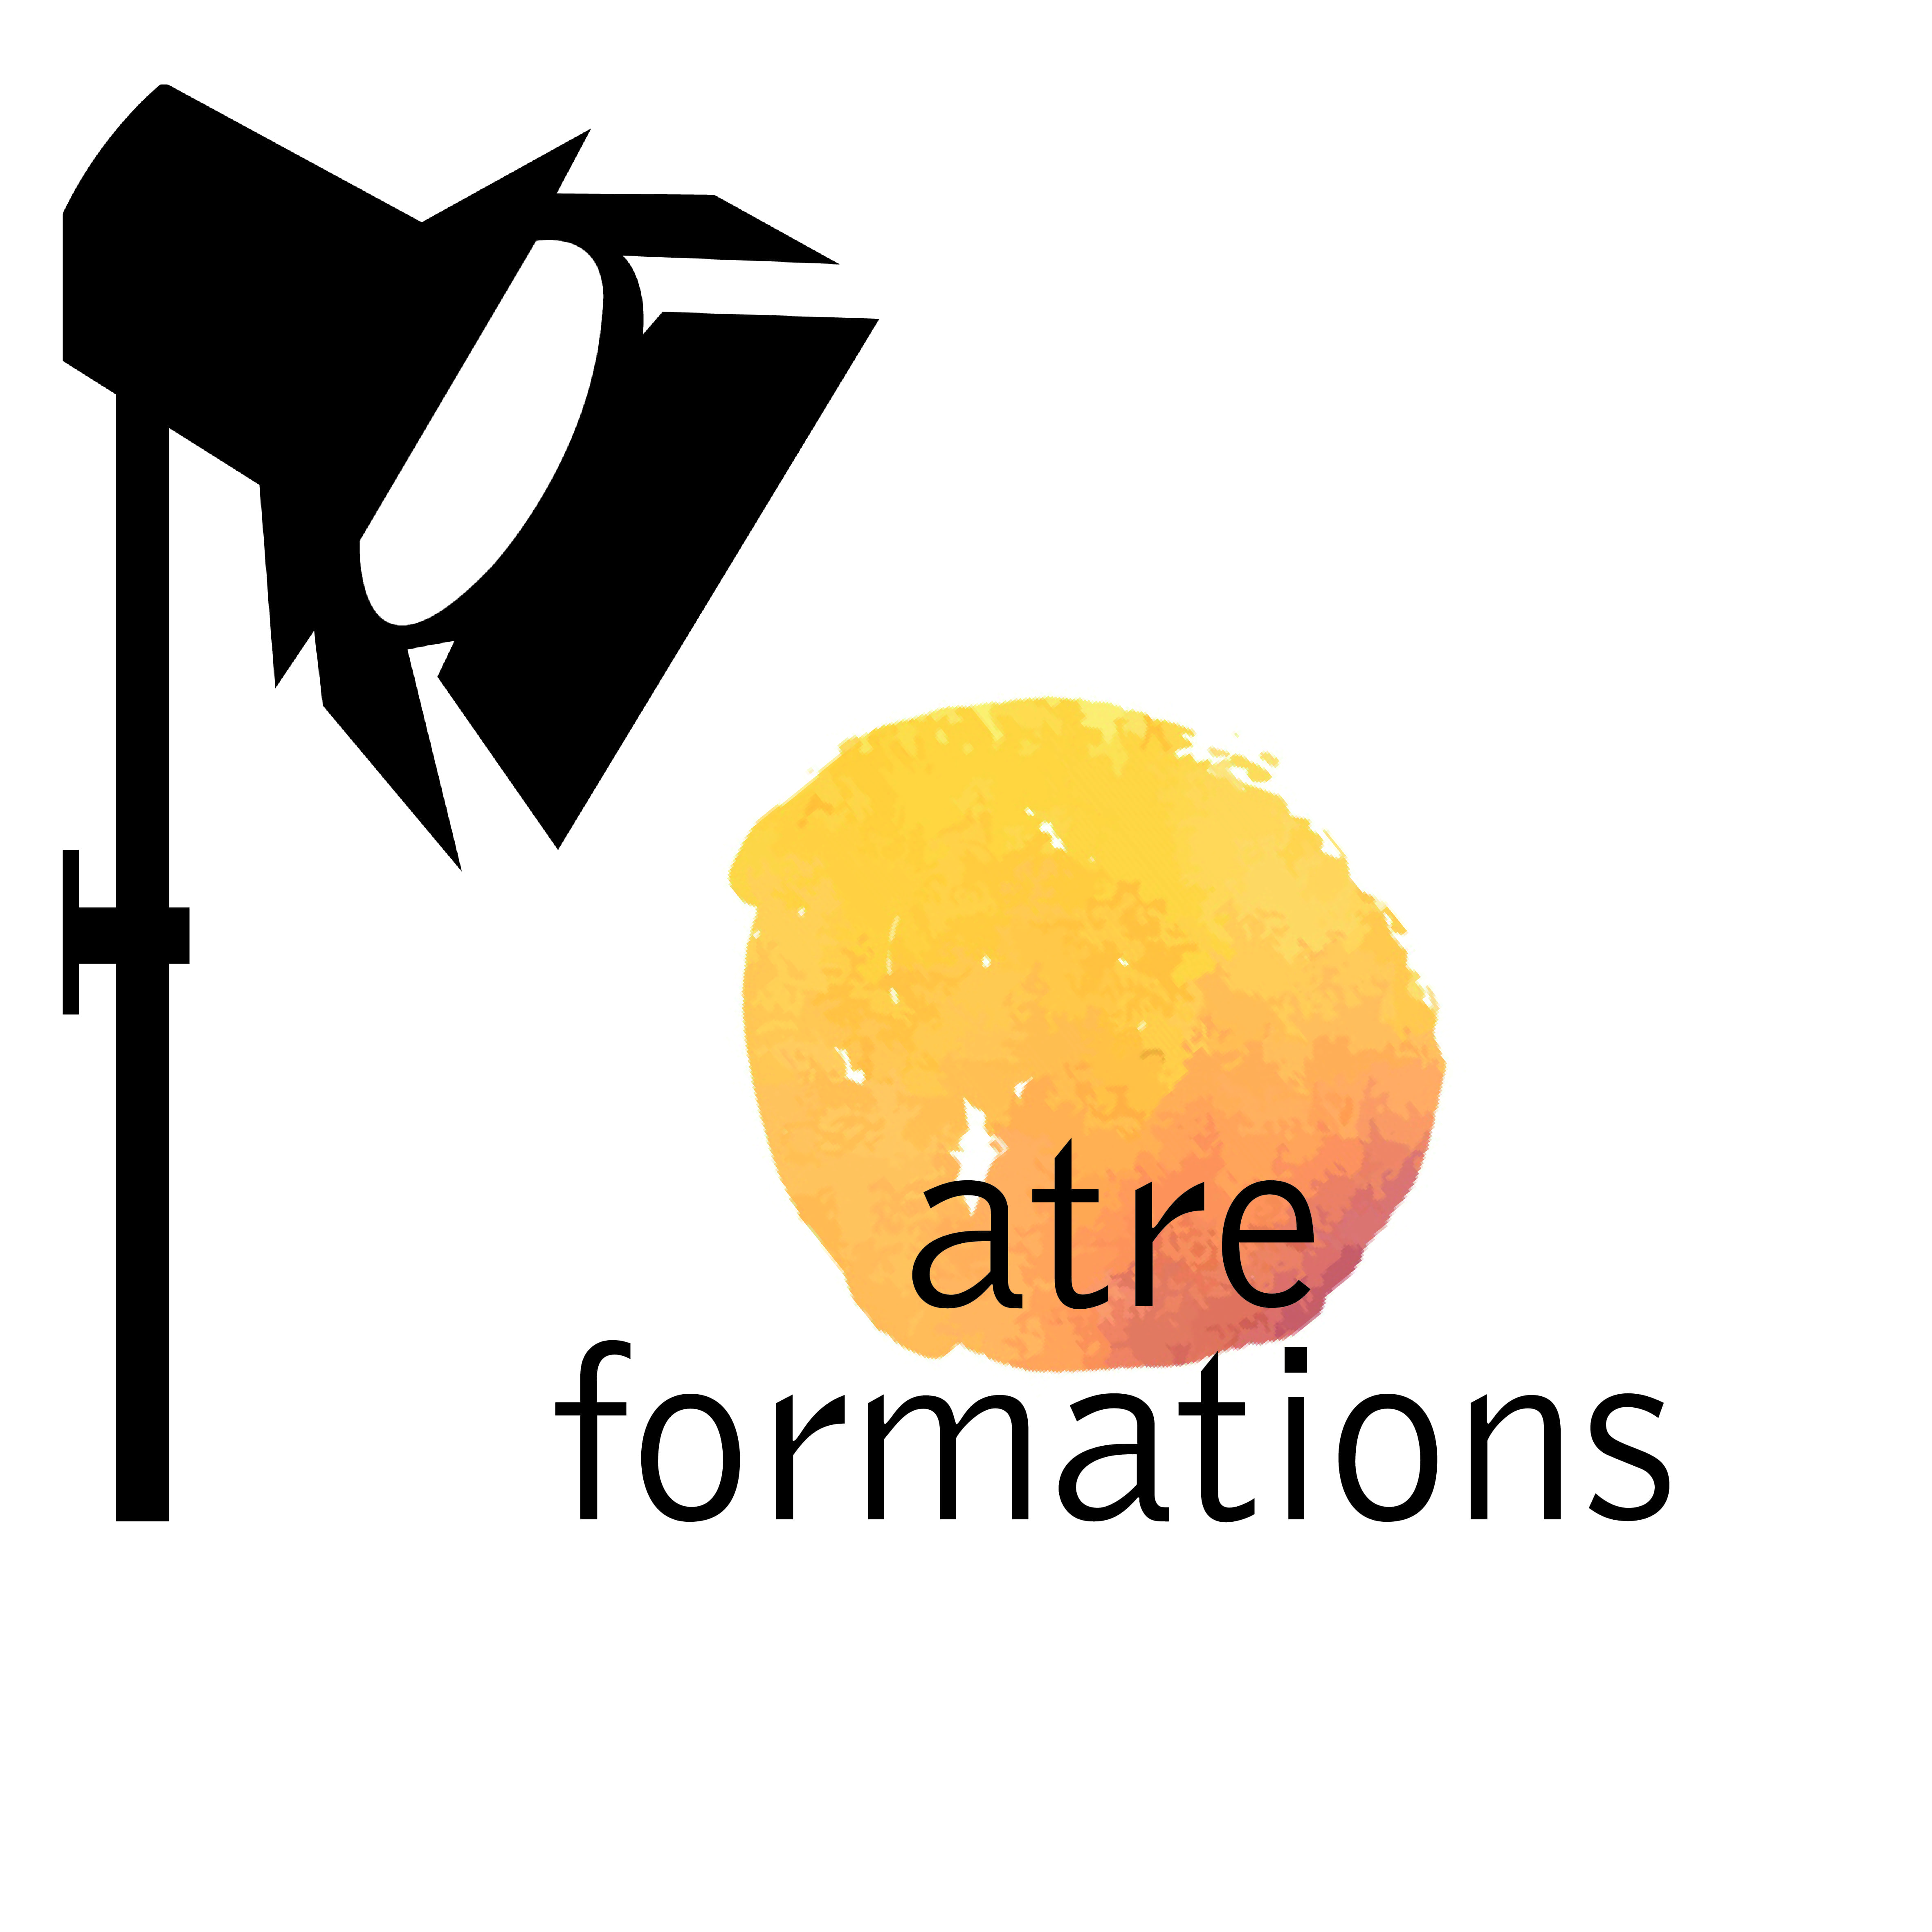 ATRE formations